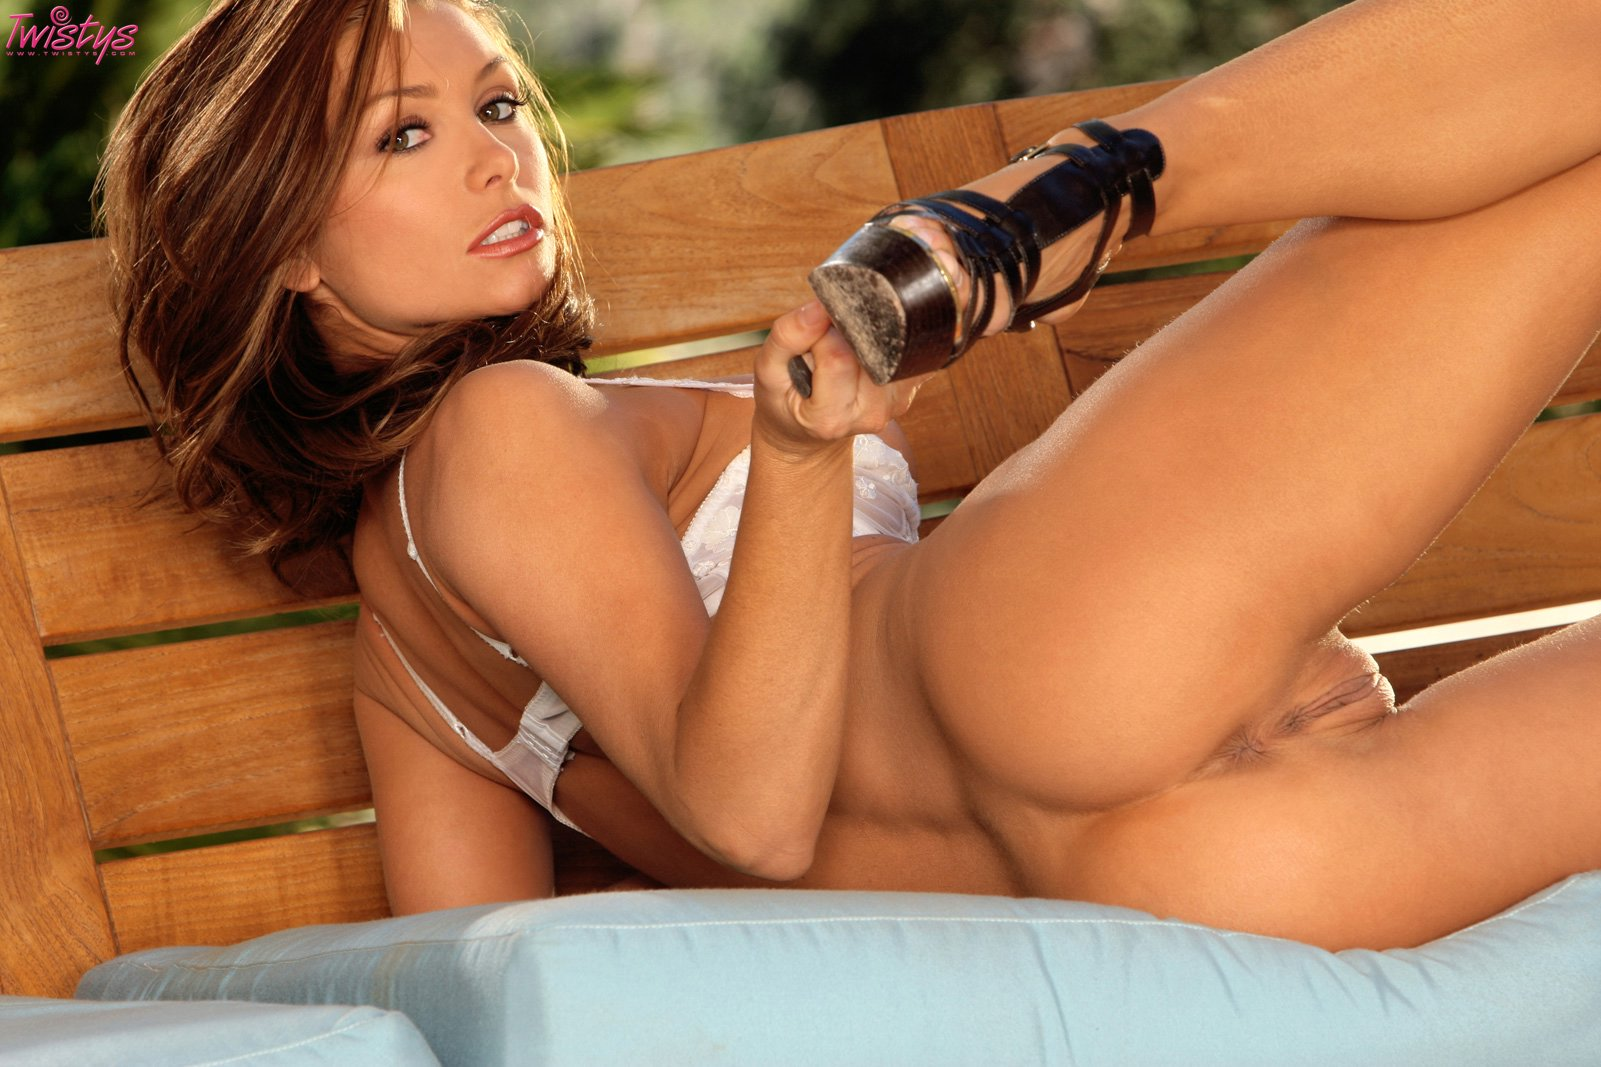 Heather vandeven anal